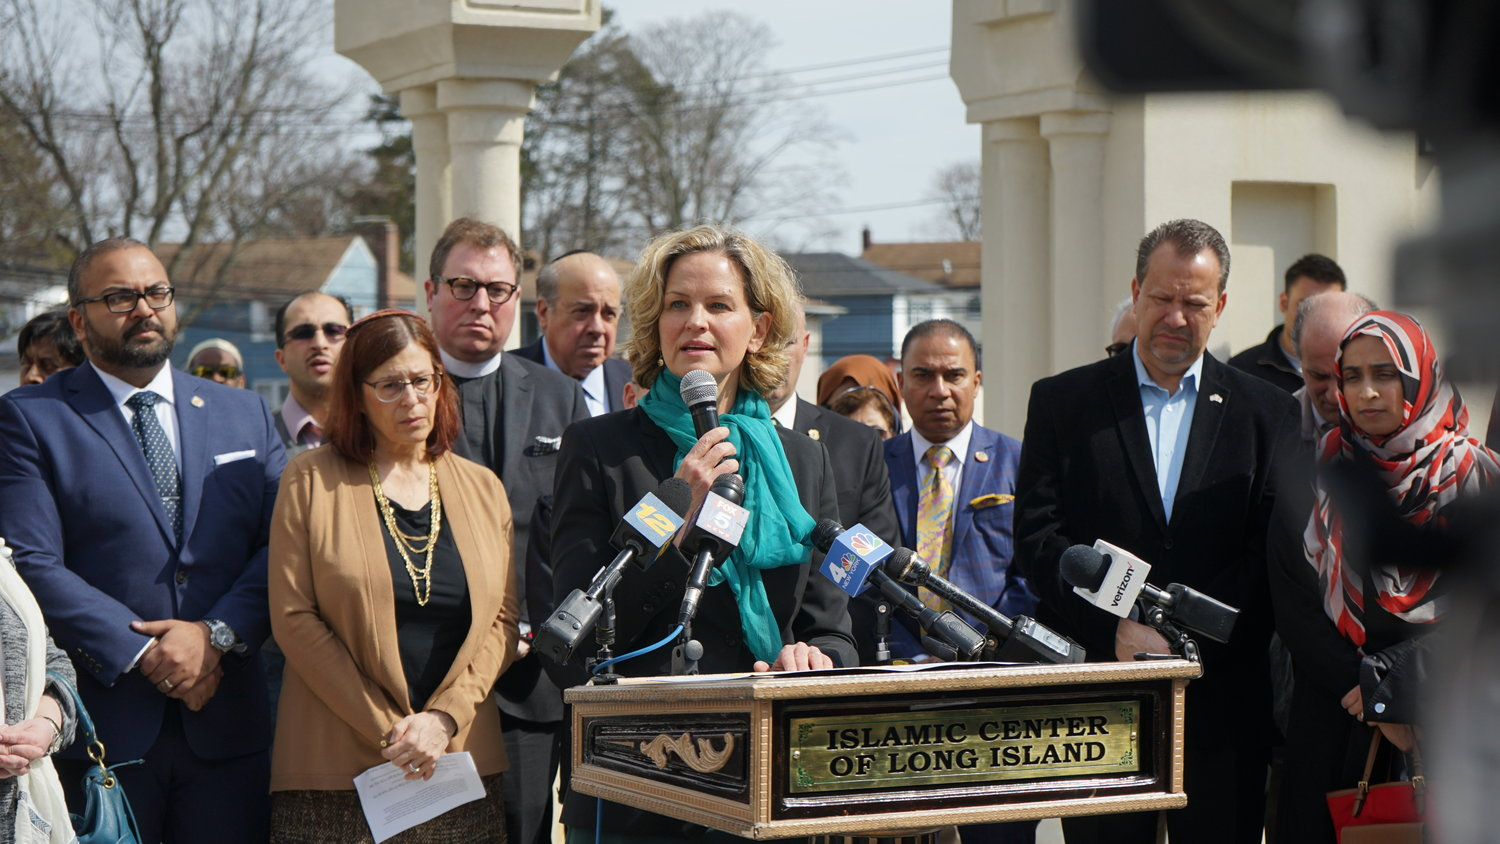 County Executive Laura Curran expressed her solidarity with Muslims living in Nassau County.